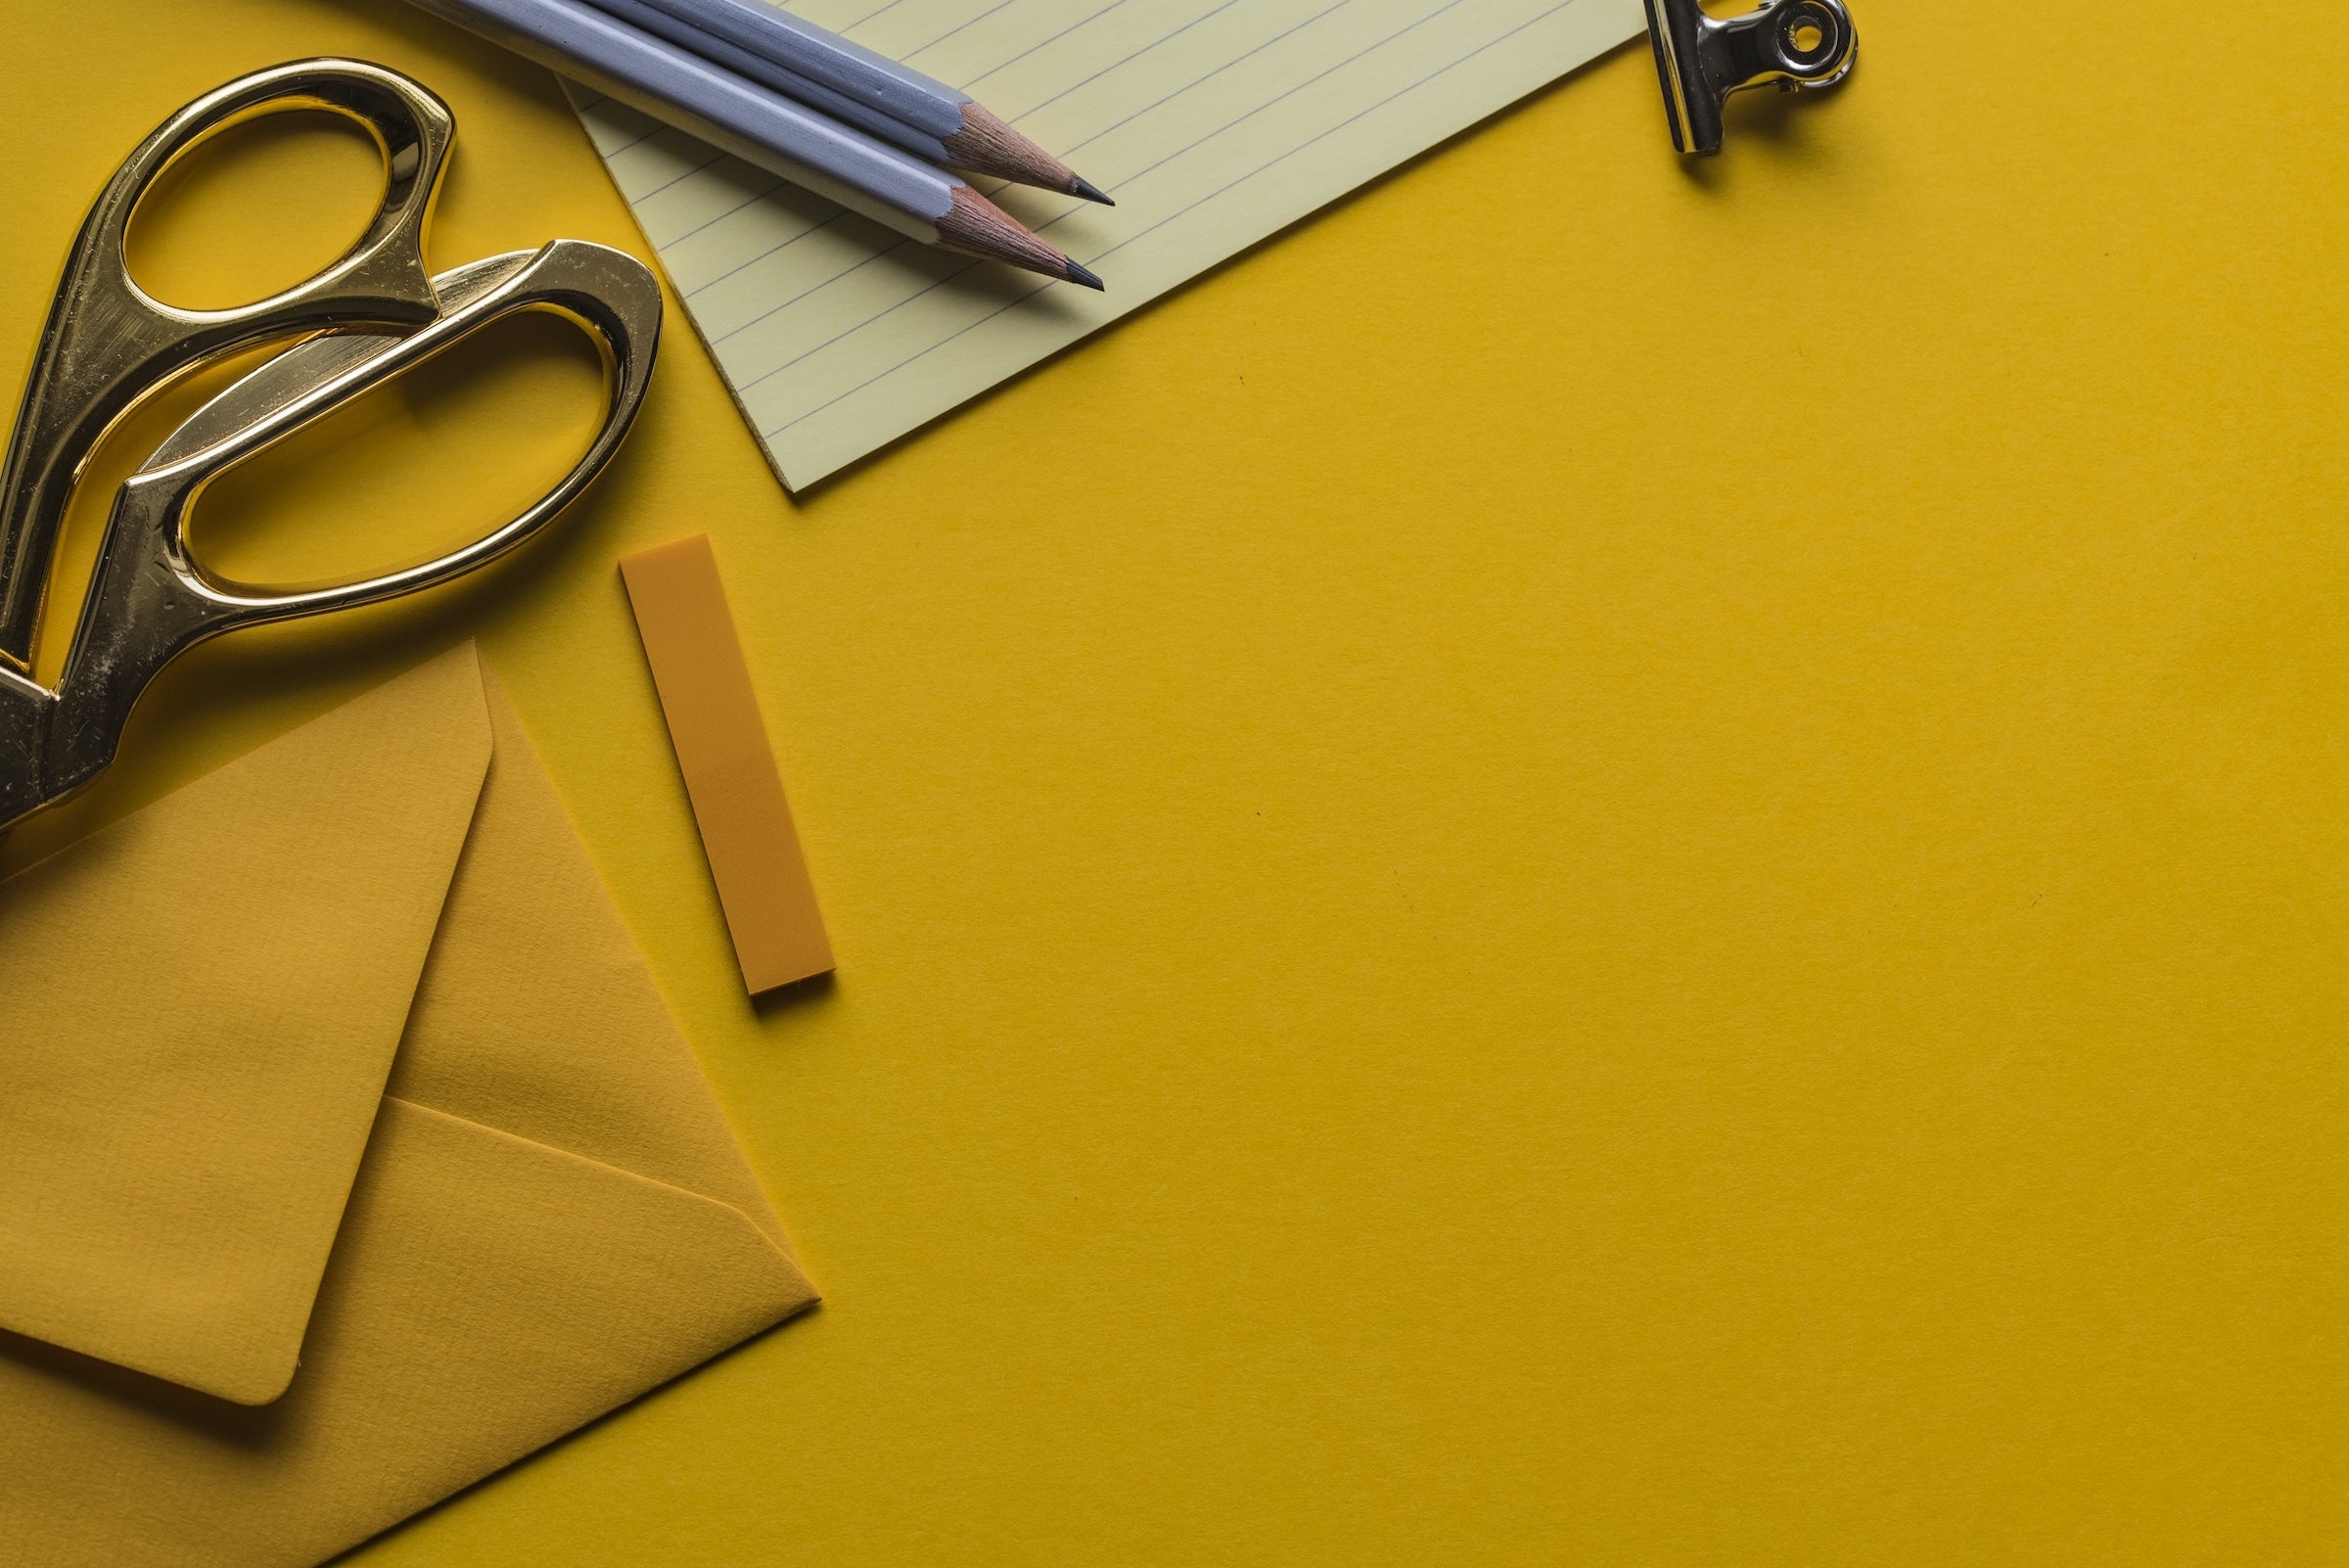 A yellow background with envelopes, notepads, folder tabs, pencils, and scissors set on top